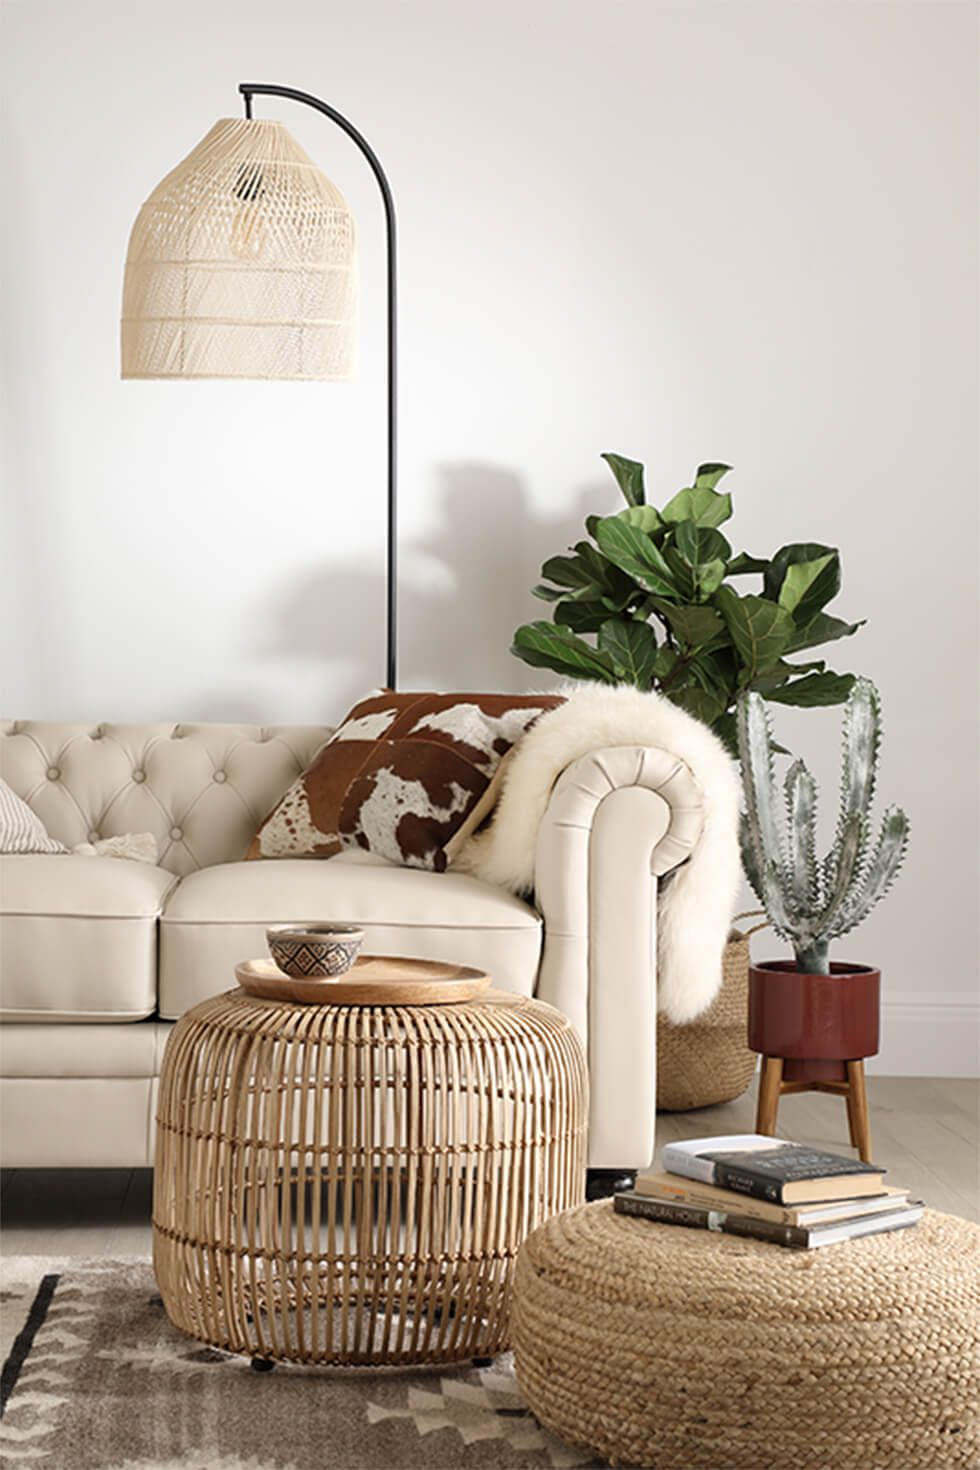 A relaxing living room with an ivory leather Chesterfield sofa and natural accessories